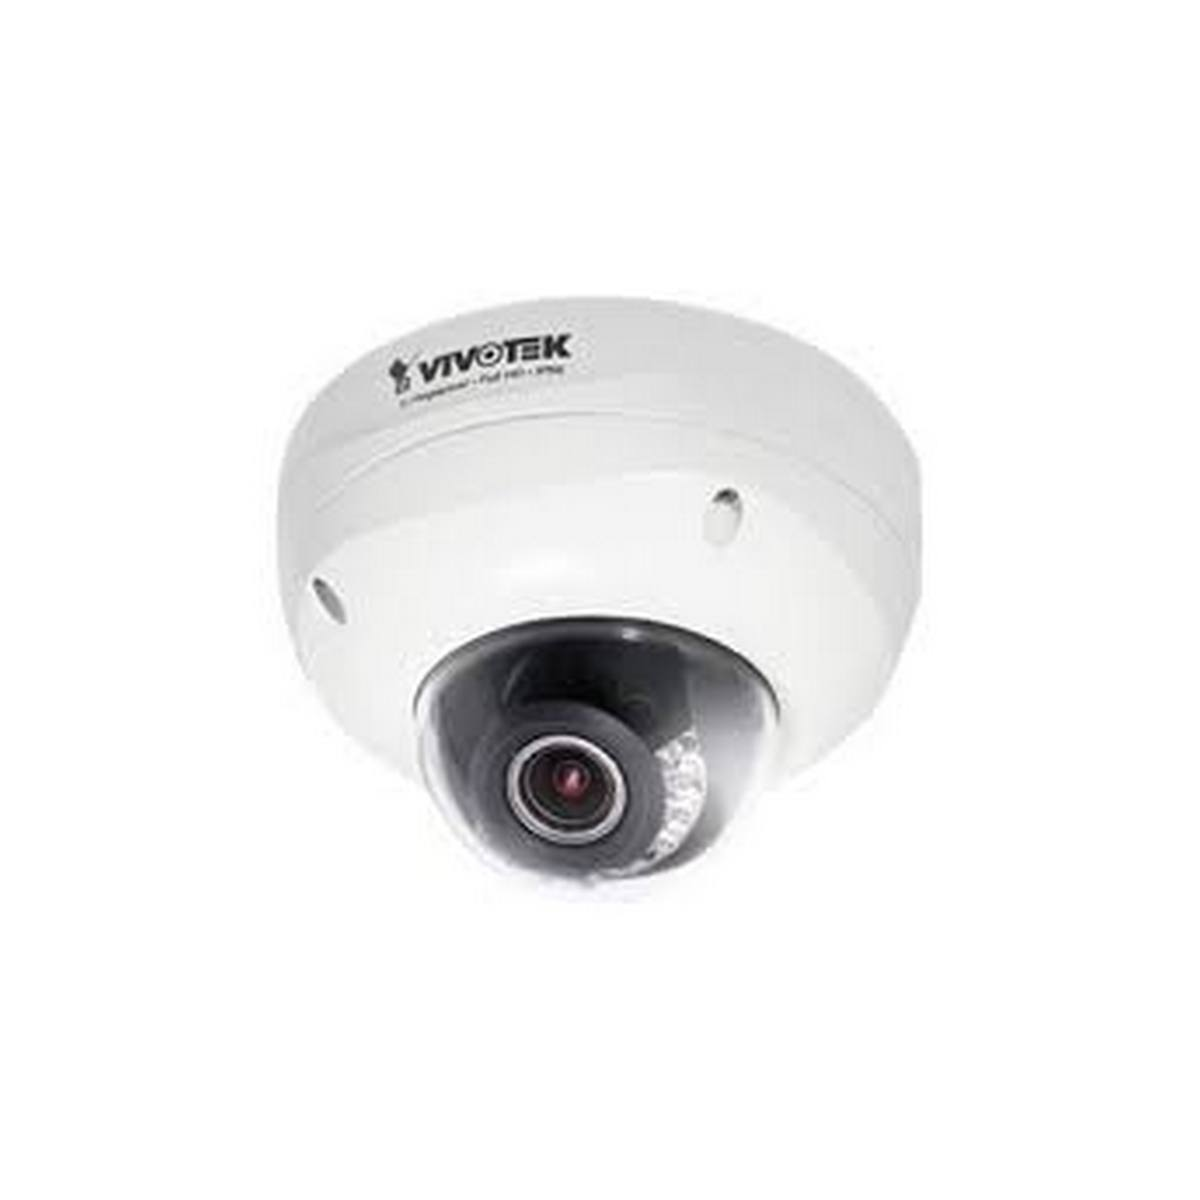 Vivotek FD8372  5MP Full HD Outdoor IP vandal dome, 3.6-9mm, 65' IR, Smart focus